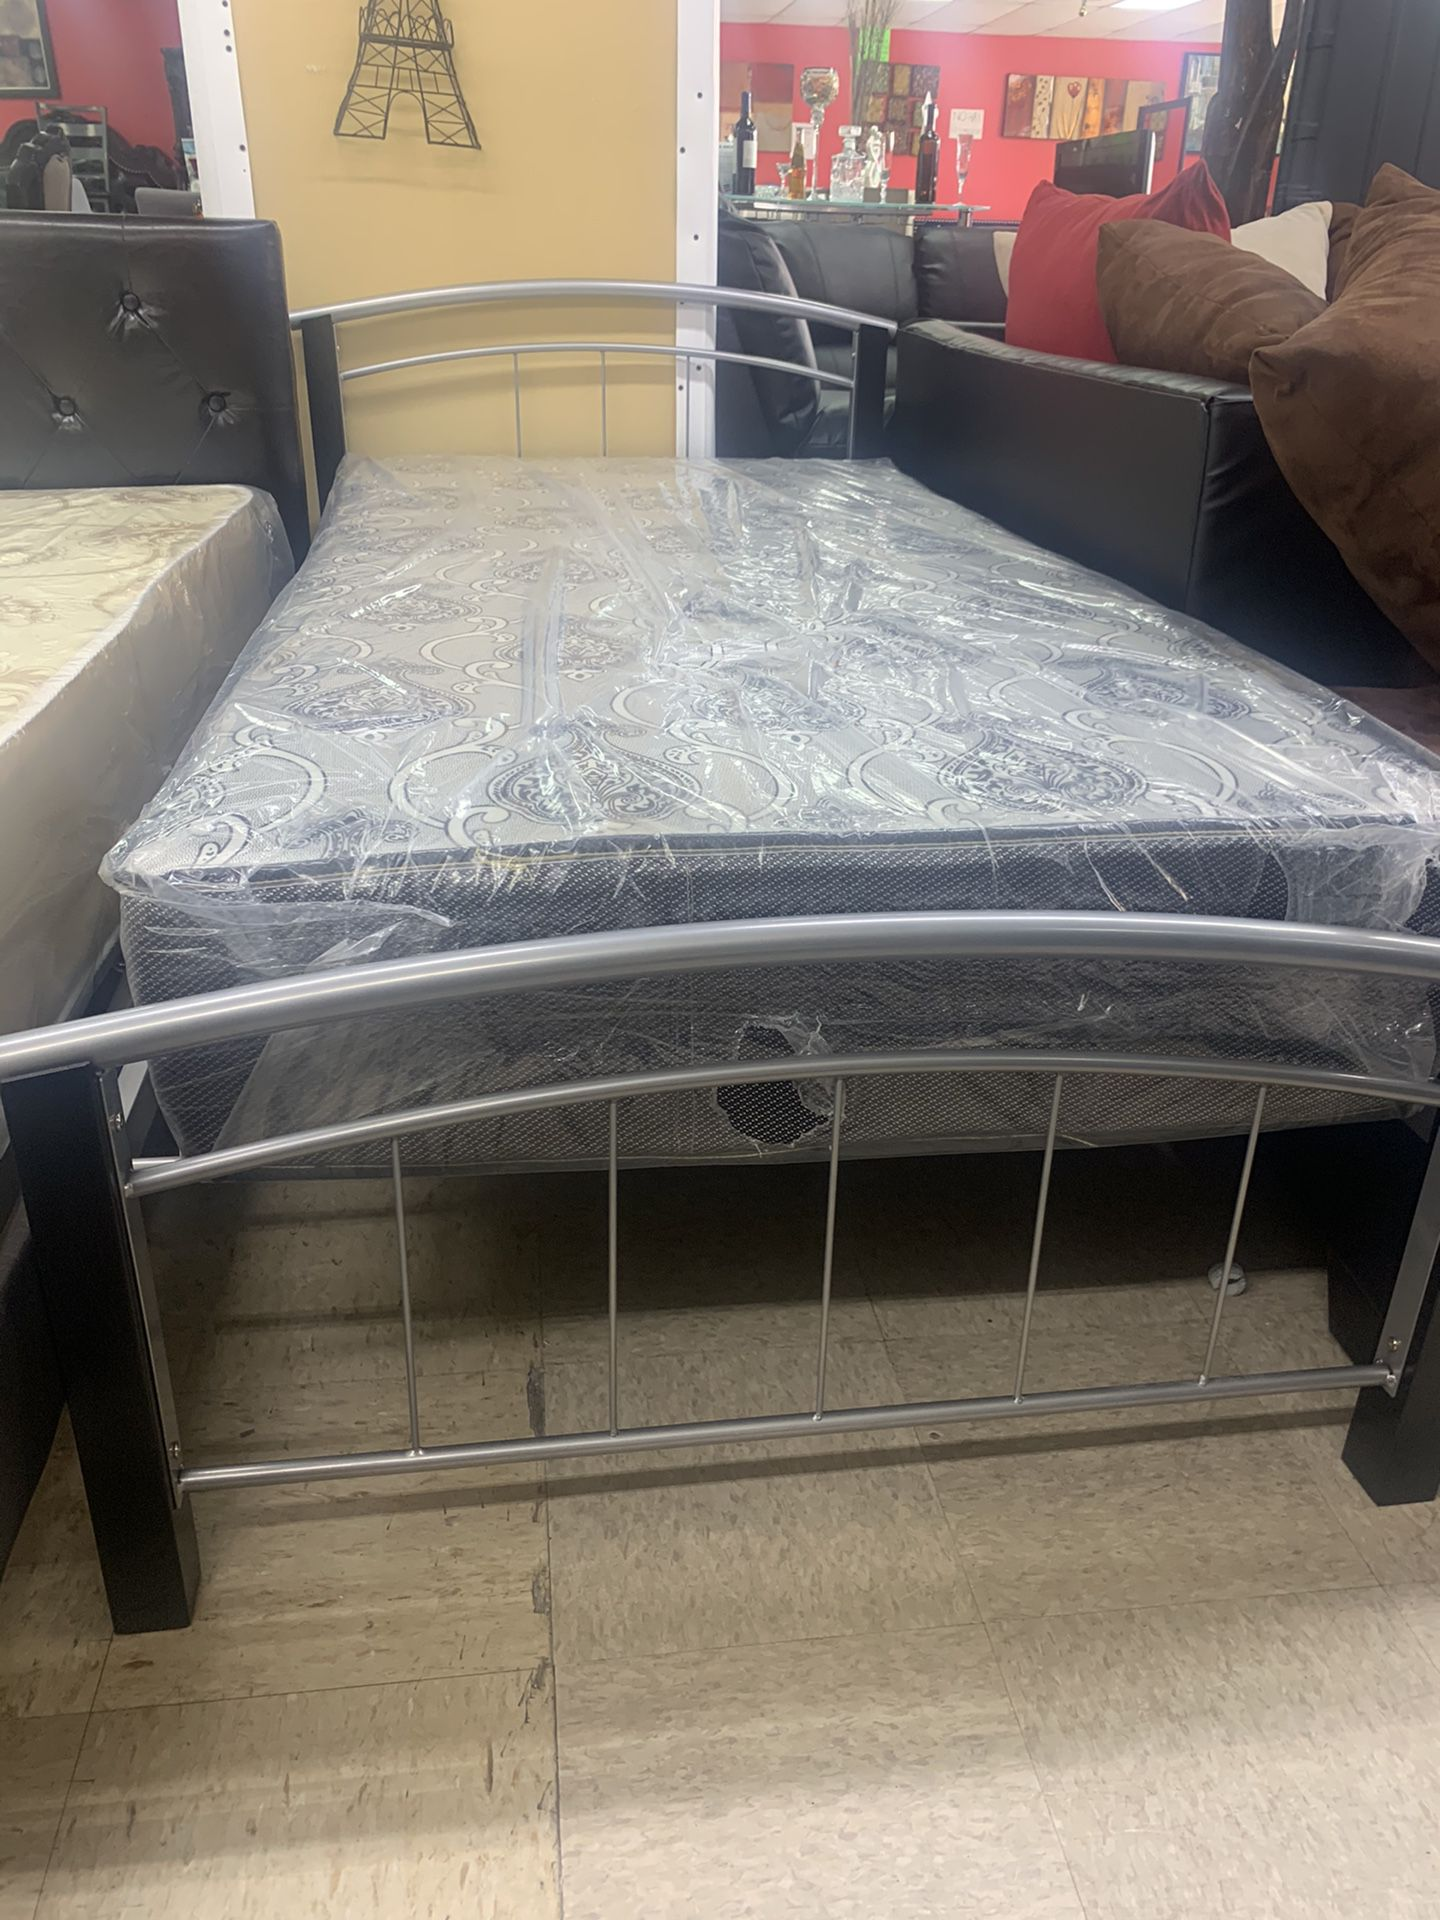 New twin bed with matreses for $150